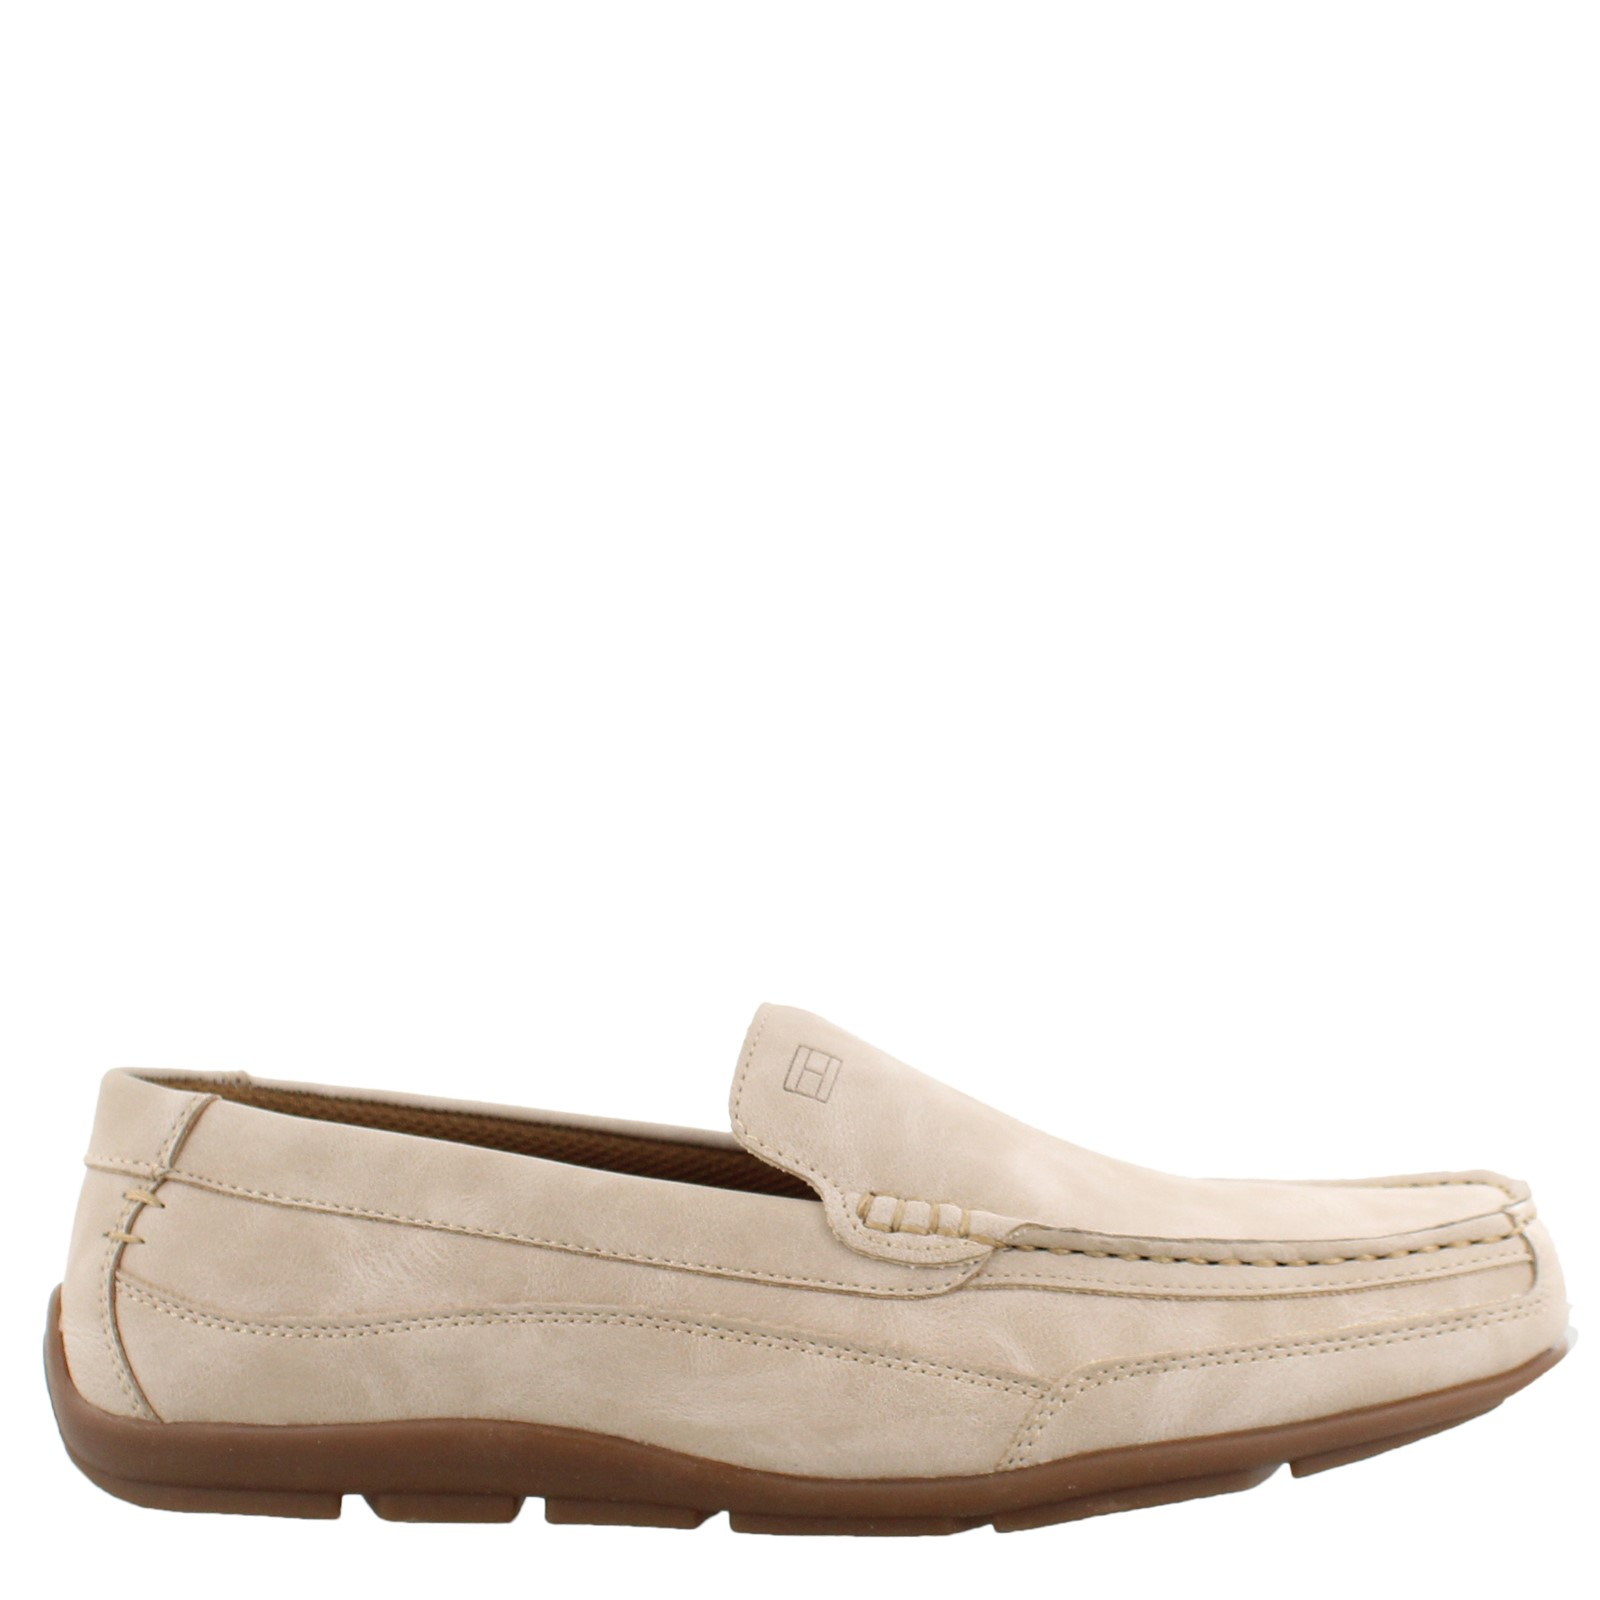 Men's Tommy Hilfiger, Dathan Loafer